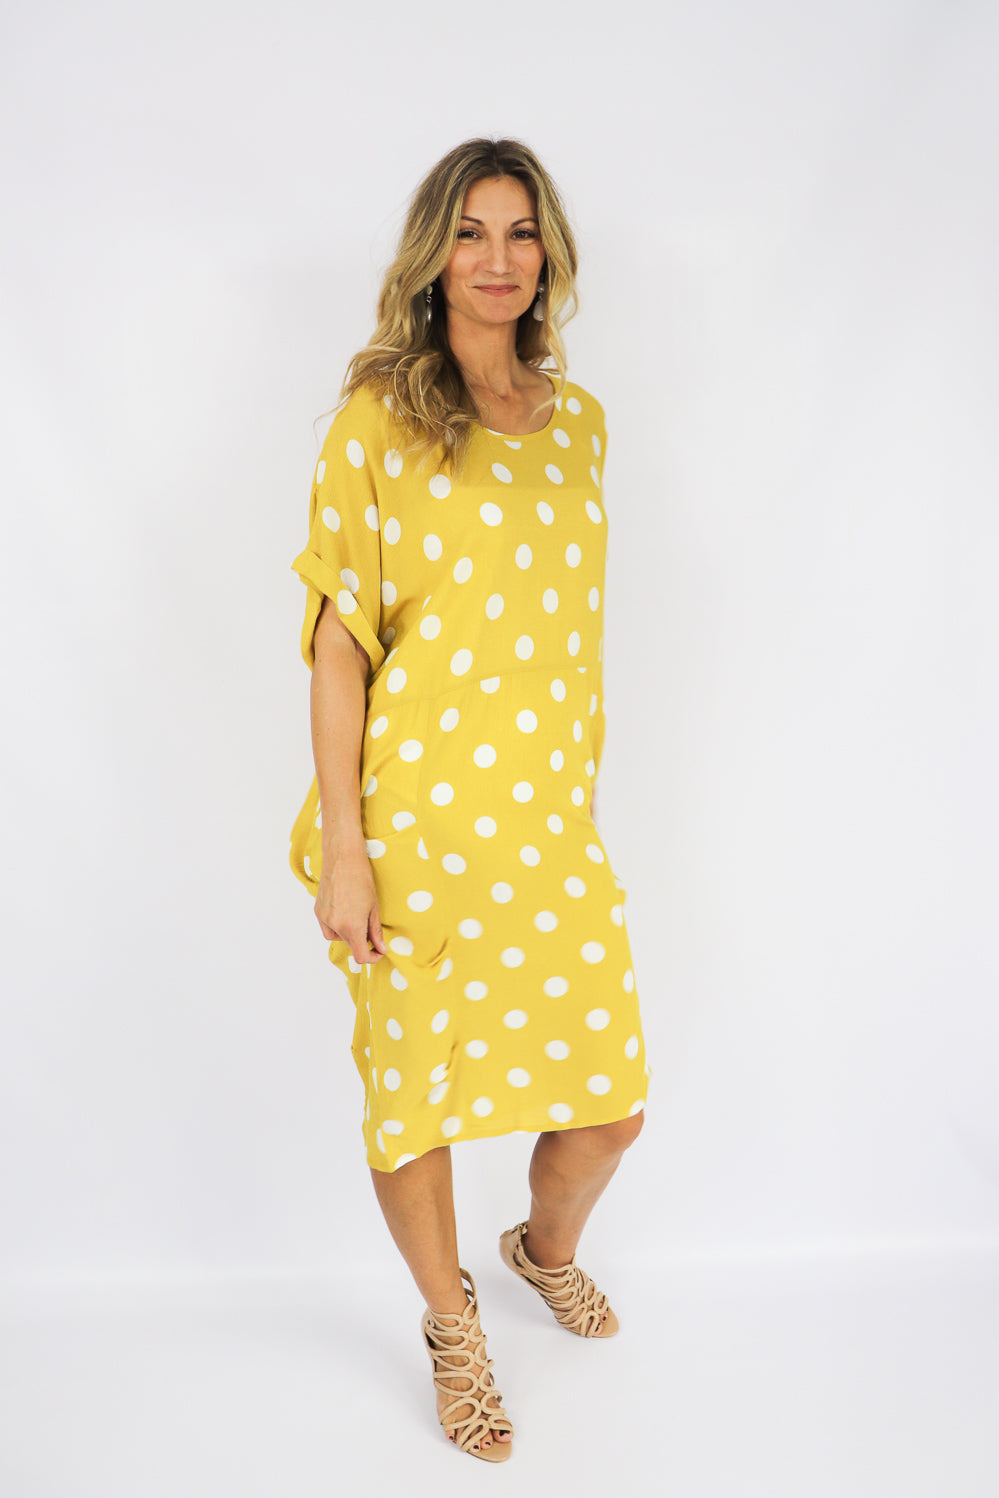 RO Sunshine Beach Dress